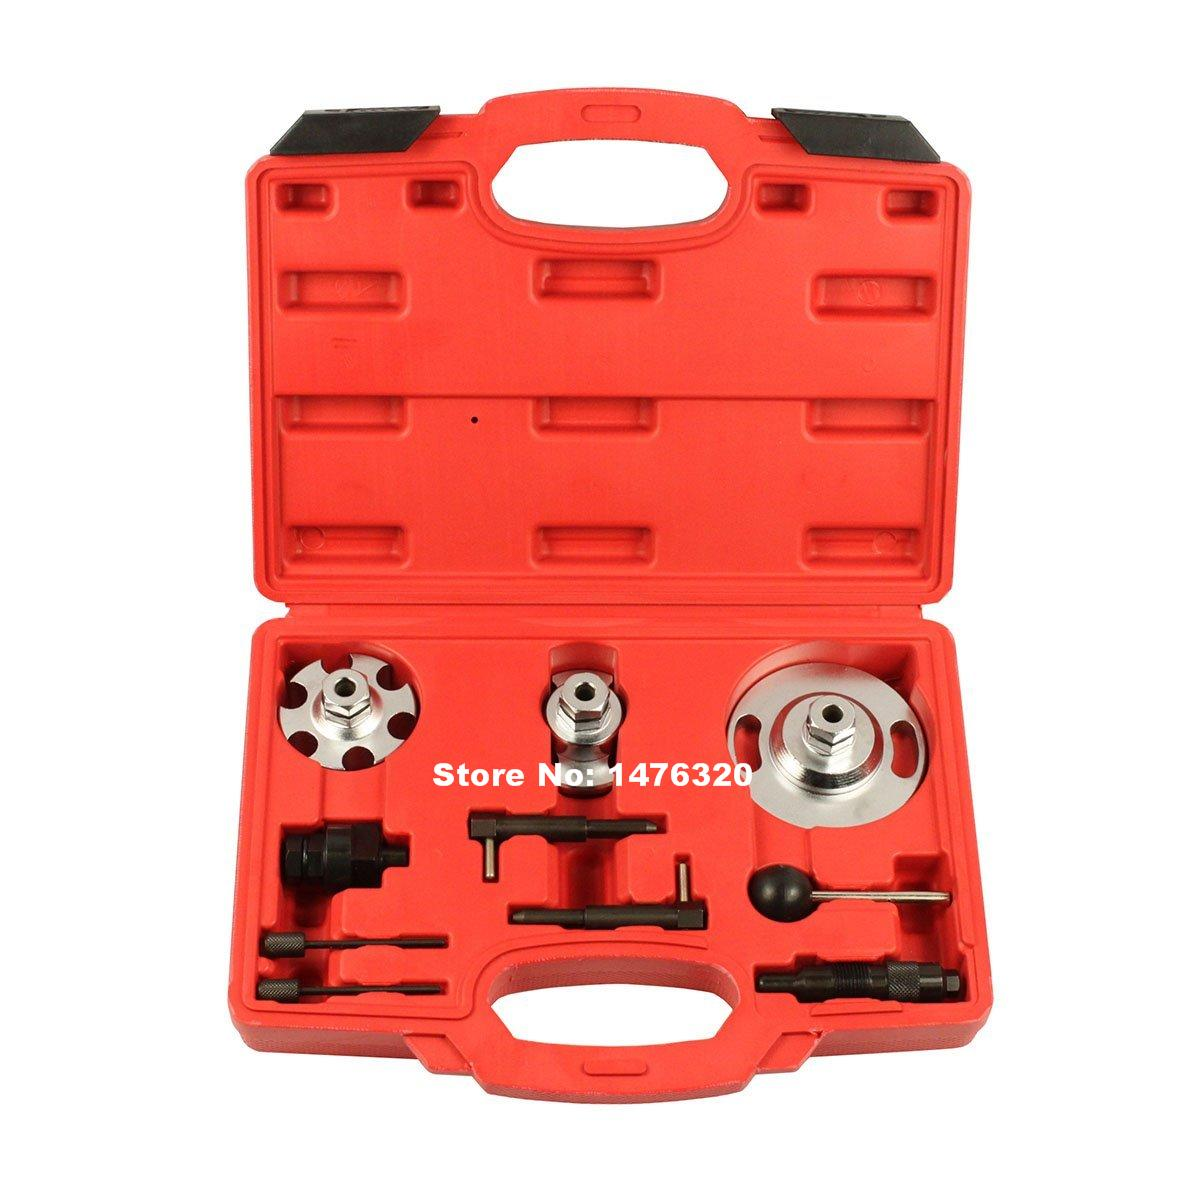 Automotive Engine Timing Camshaft Locking Setting Tool Kit For Audi A4/A5/A6/Q5/Q7/Touareg/Phaeton VAG 2.7/3.0 AT2032  high quality diesel engine timing locking tool for vag 2 7